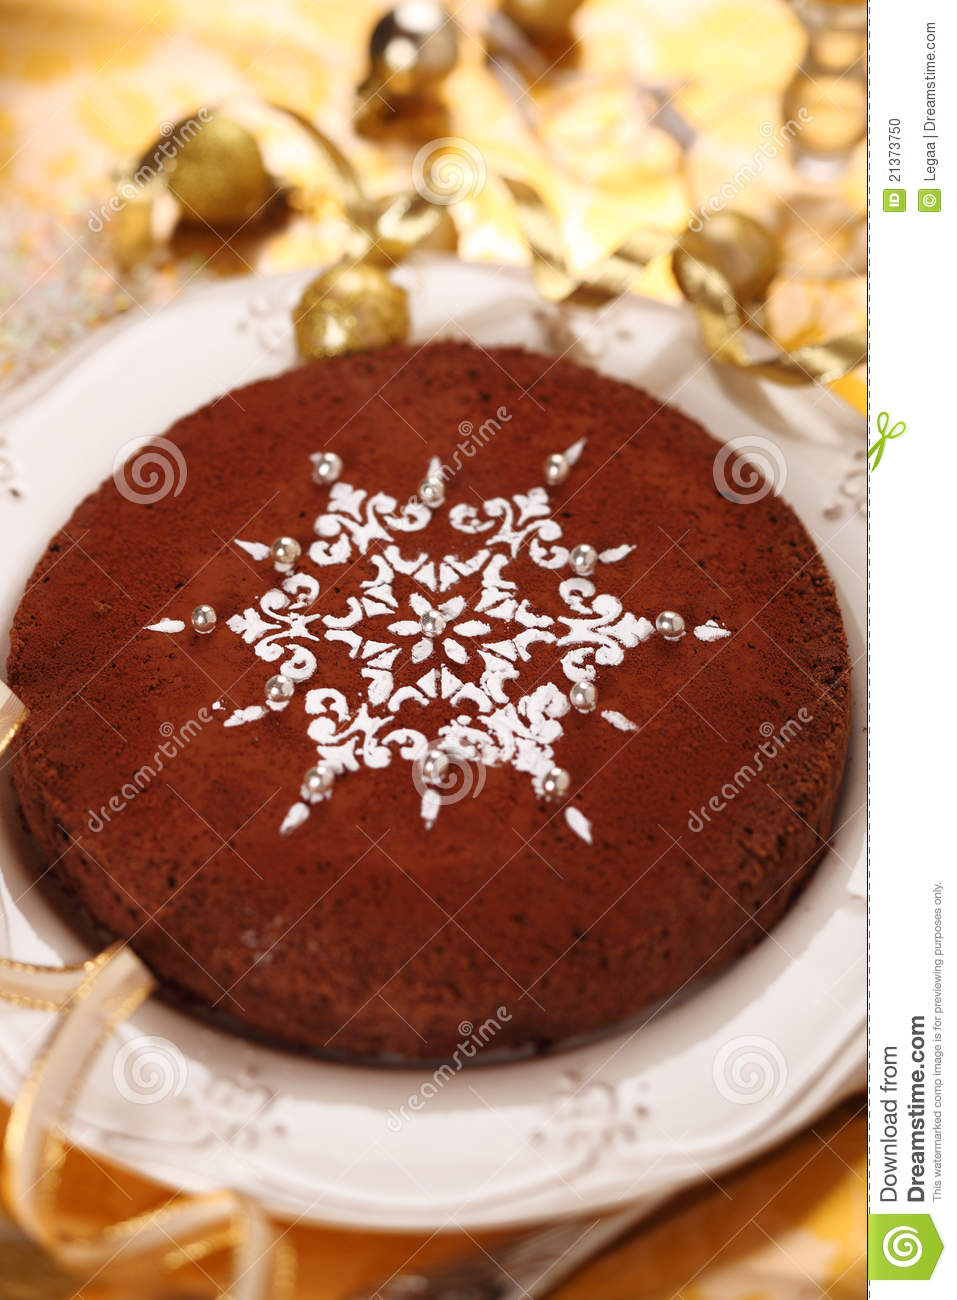 How Decorate Cake At Home : Torta Di Cioccolato Decorata Con Il Fiocco Di Neve ...